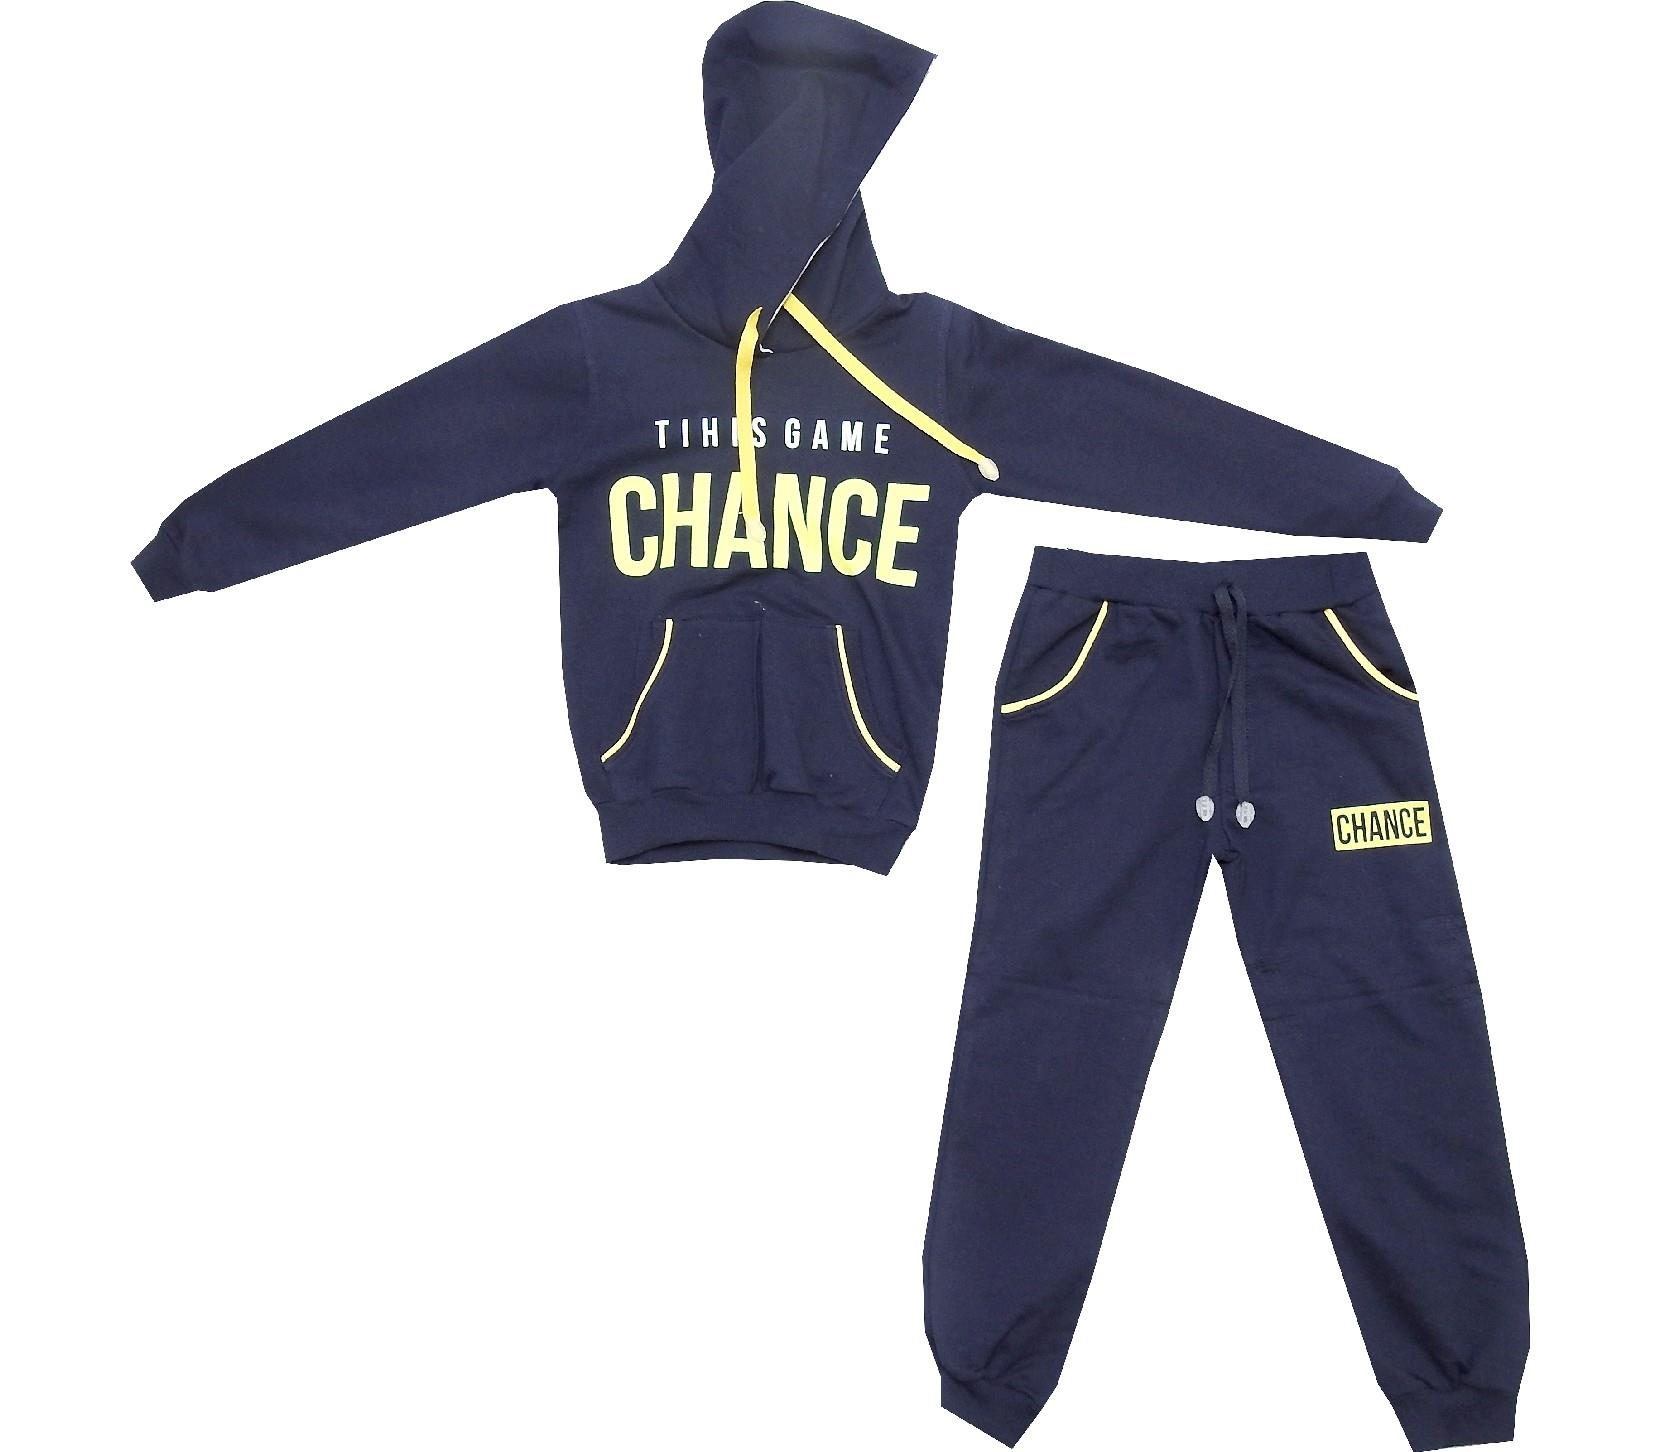 THIS GAME CHANCE PRINTED SWEATSHIRT AND TROUSER DOUBLE SET FOR BOY (5-6-7-8 AGE)